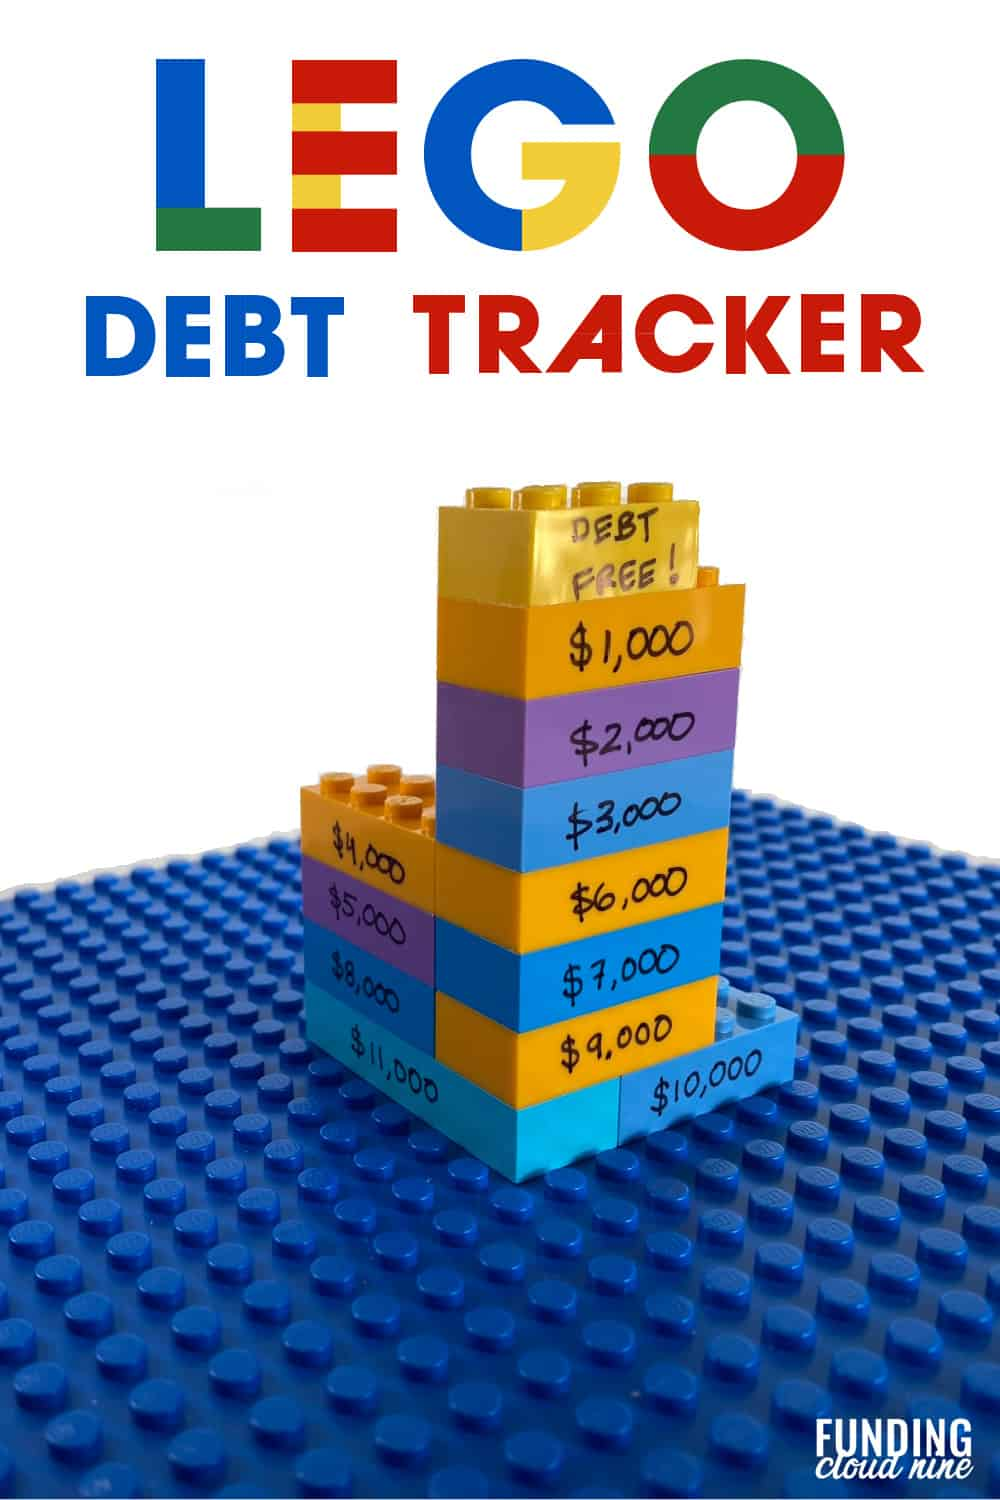 Get your kids involved in the debt payoff process. Create your own lego debt tracker and build your way to debt-freedom.